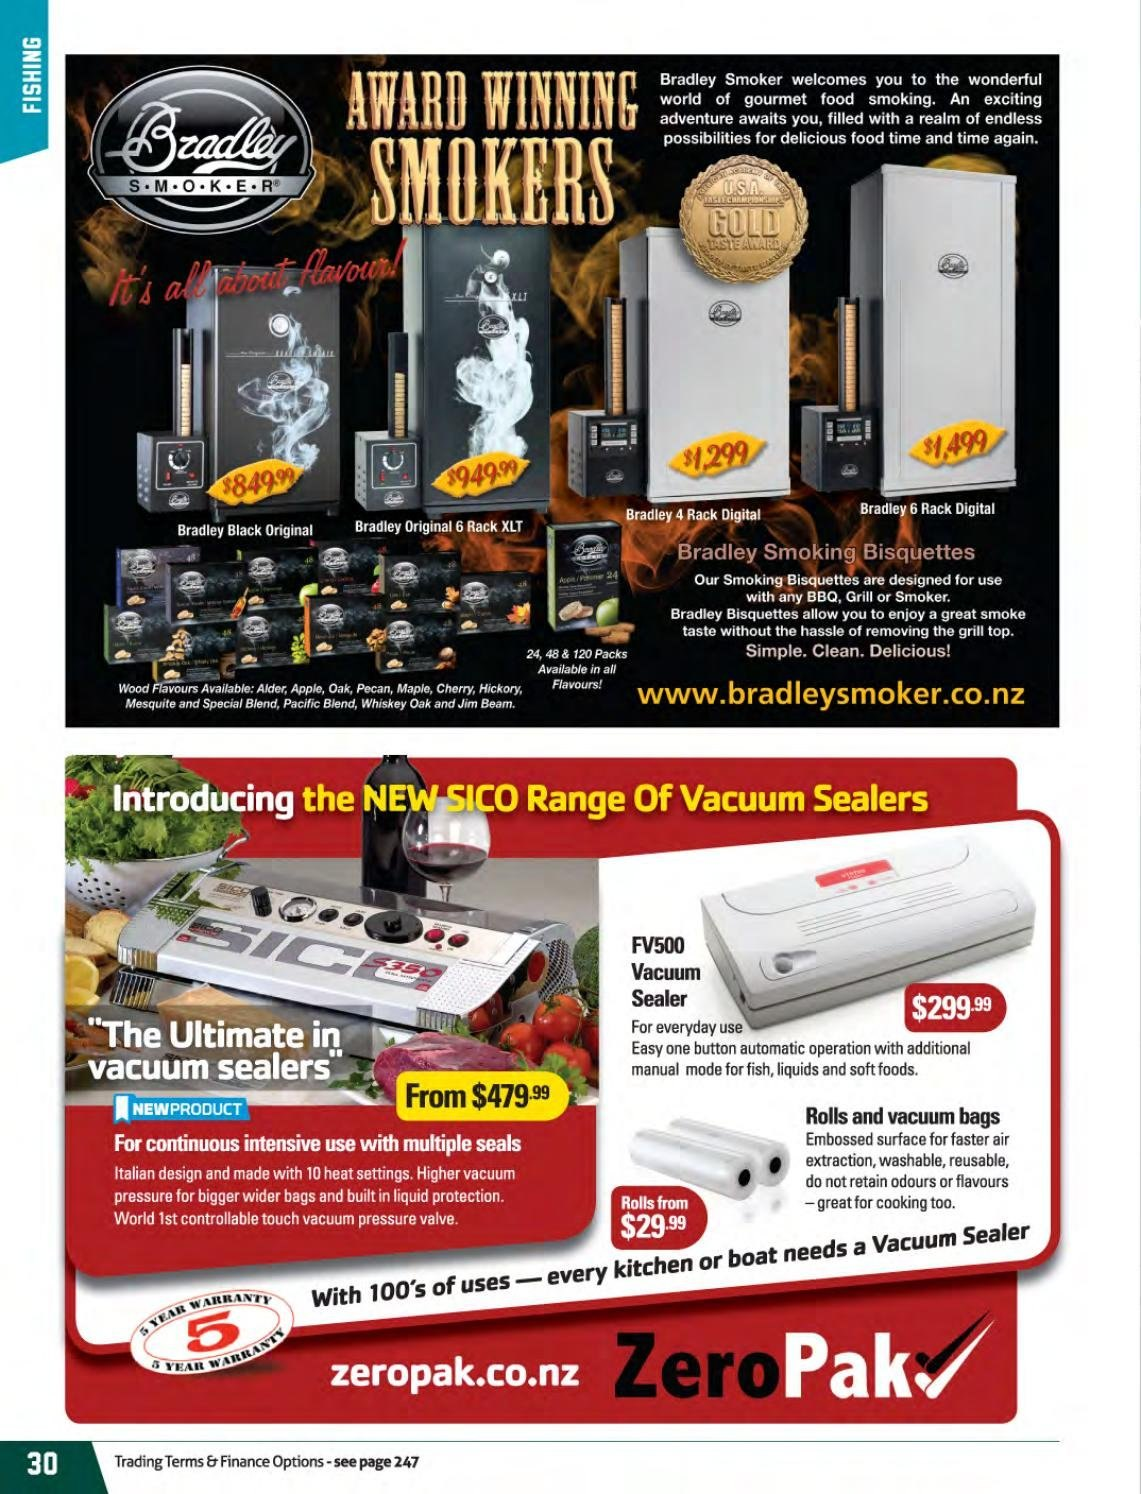 Hunting & Fishing mailer - Sales products - rolls, vacuum sealer. Page 30.